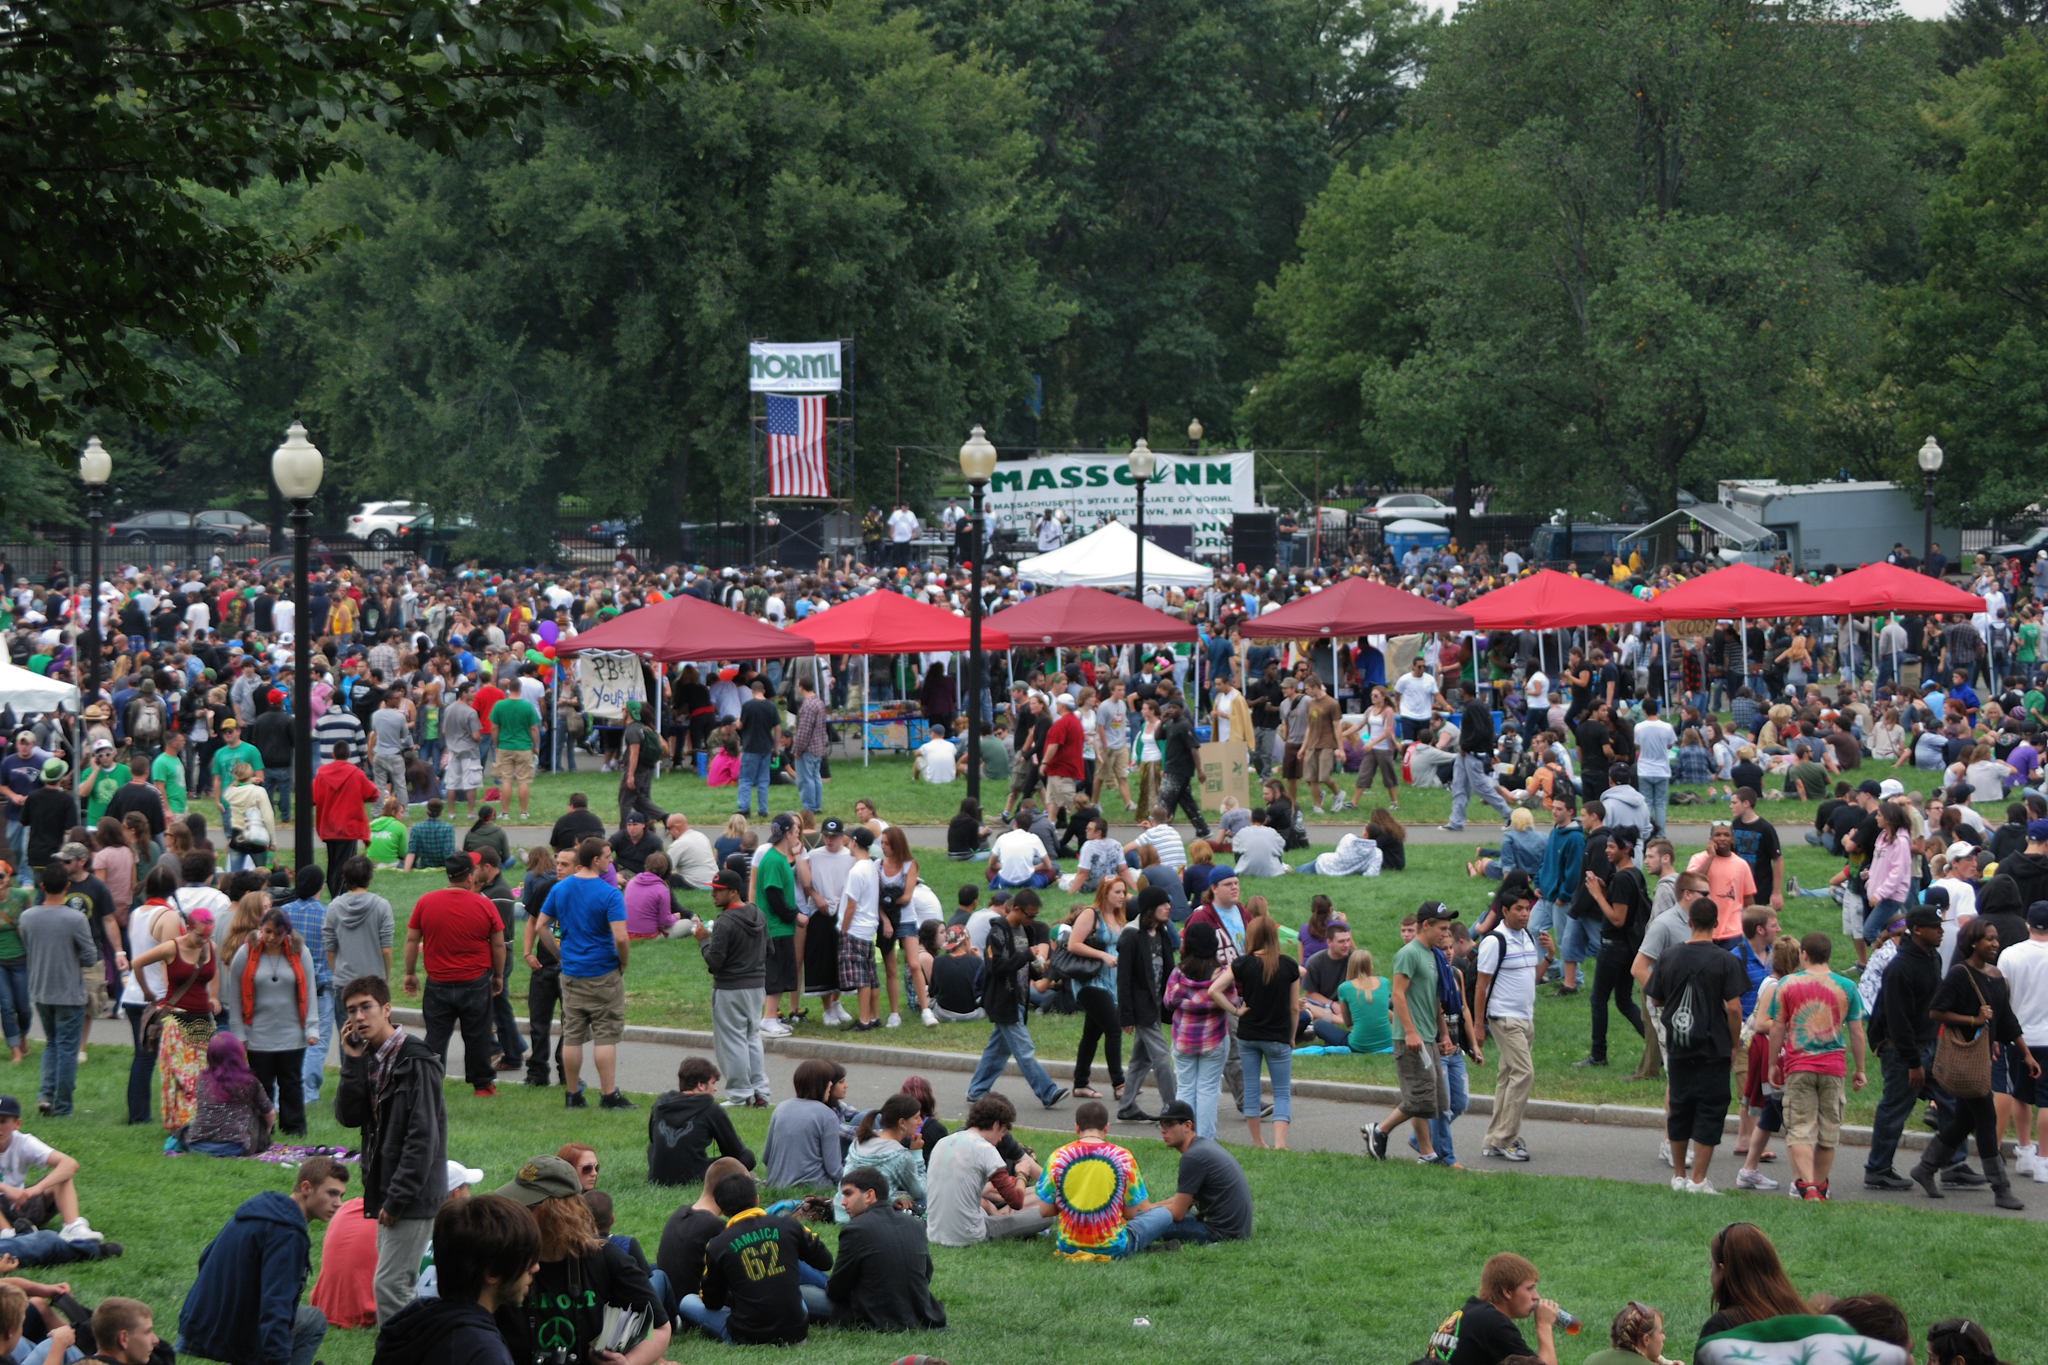 Massachusetts Cannabis Reform Coalition's Freedom Rally